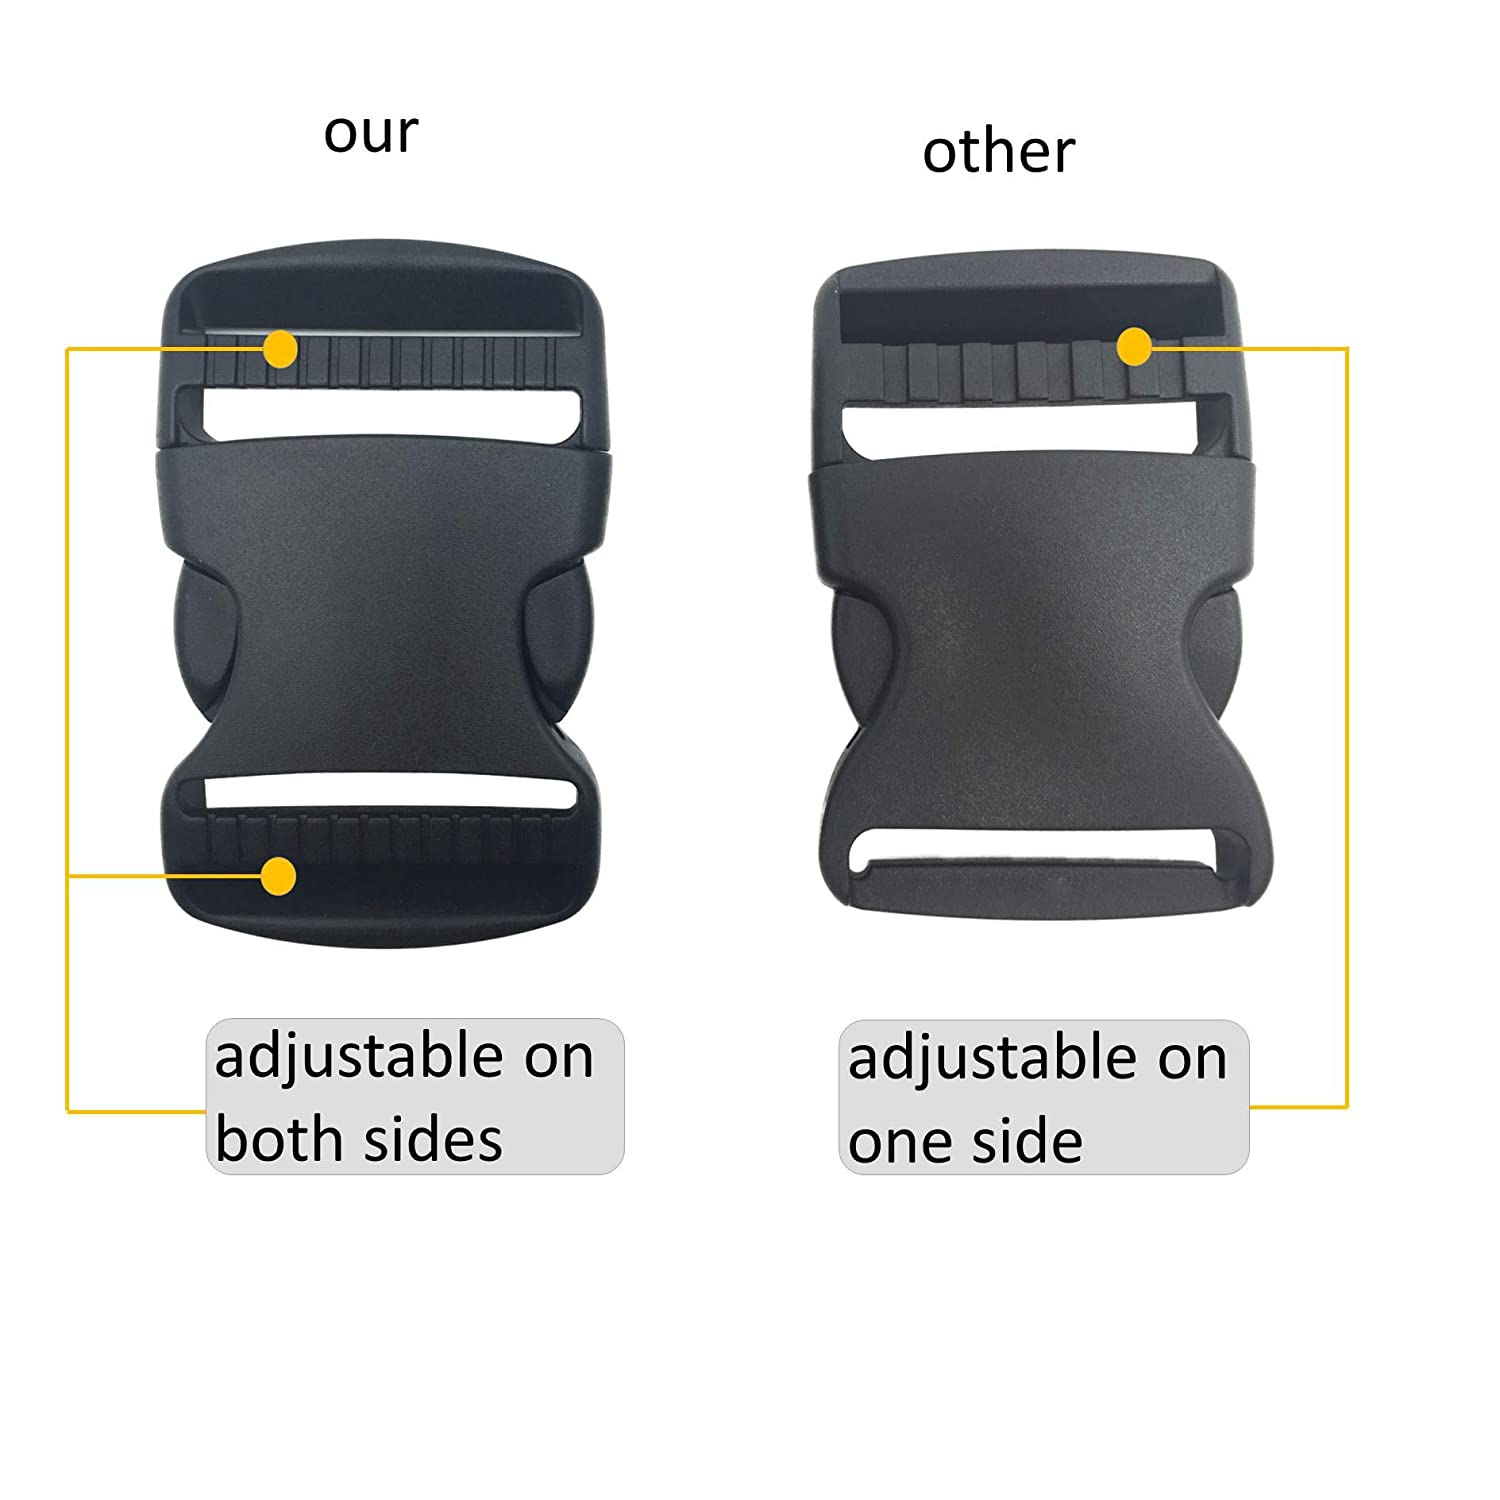 Black 6 Set 2 Inch Flat Dual Adjustable Plastic Side Release Plastic Buckles and Tri-Glide Slides Quick Side Release Buckle for Luggage Straps Pet Collar Backpack Repairing